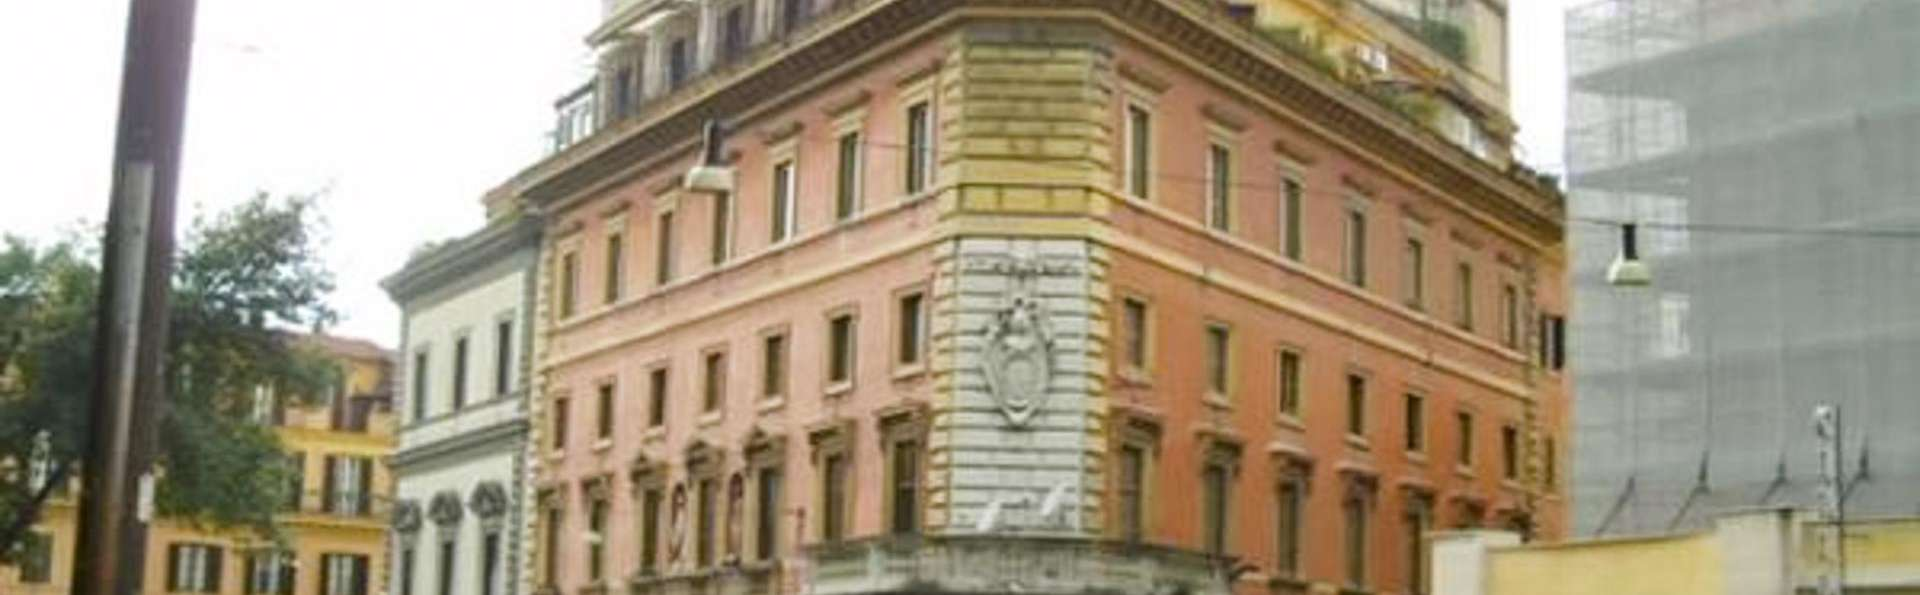 Hotel Traiano - EDIT_FRONT_01.jpg